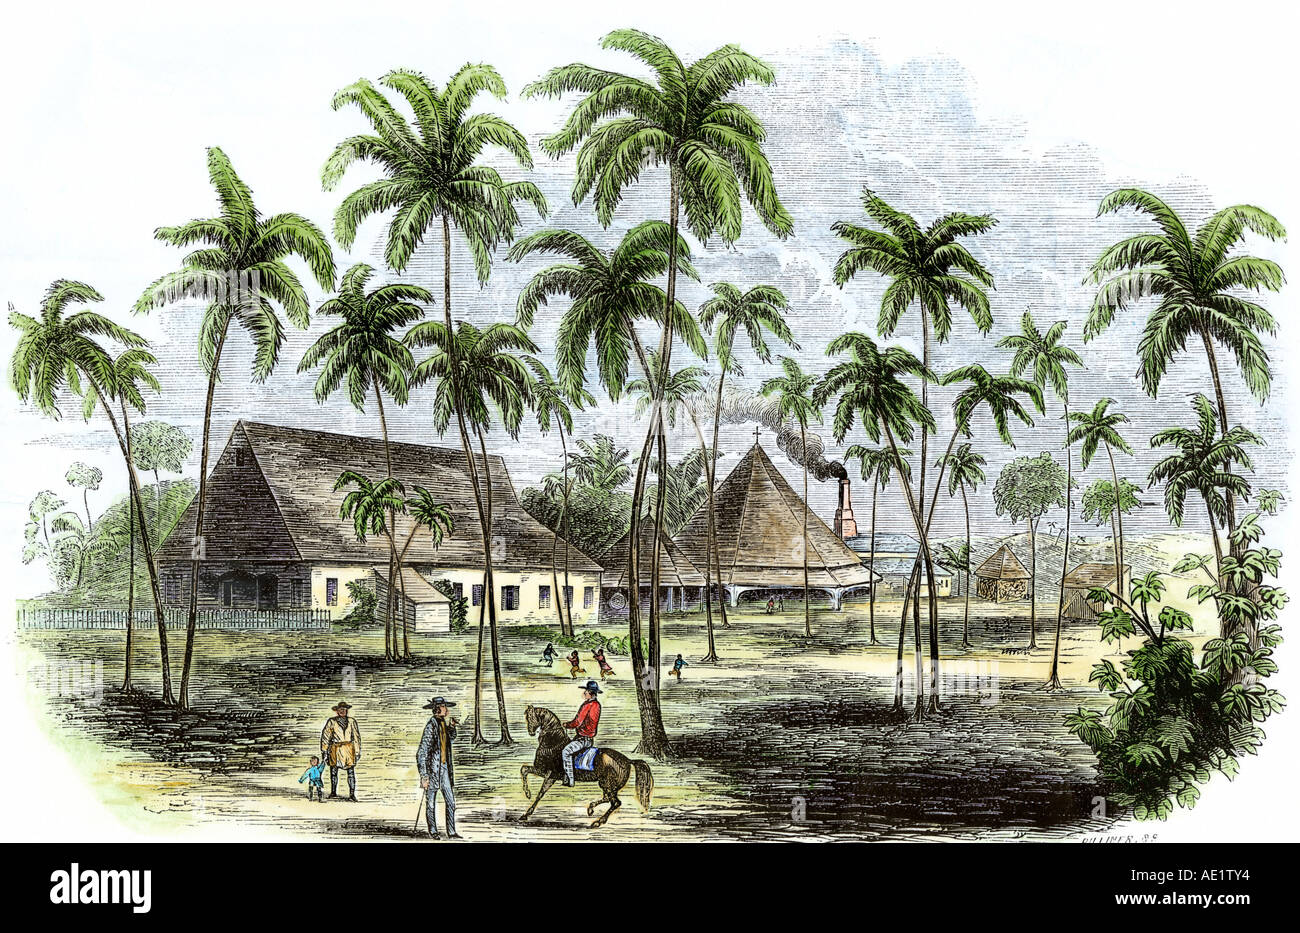 Sugar plantation in Cuba 1850s. Hand-colored woodcut - Stock Image